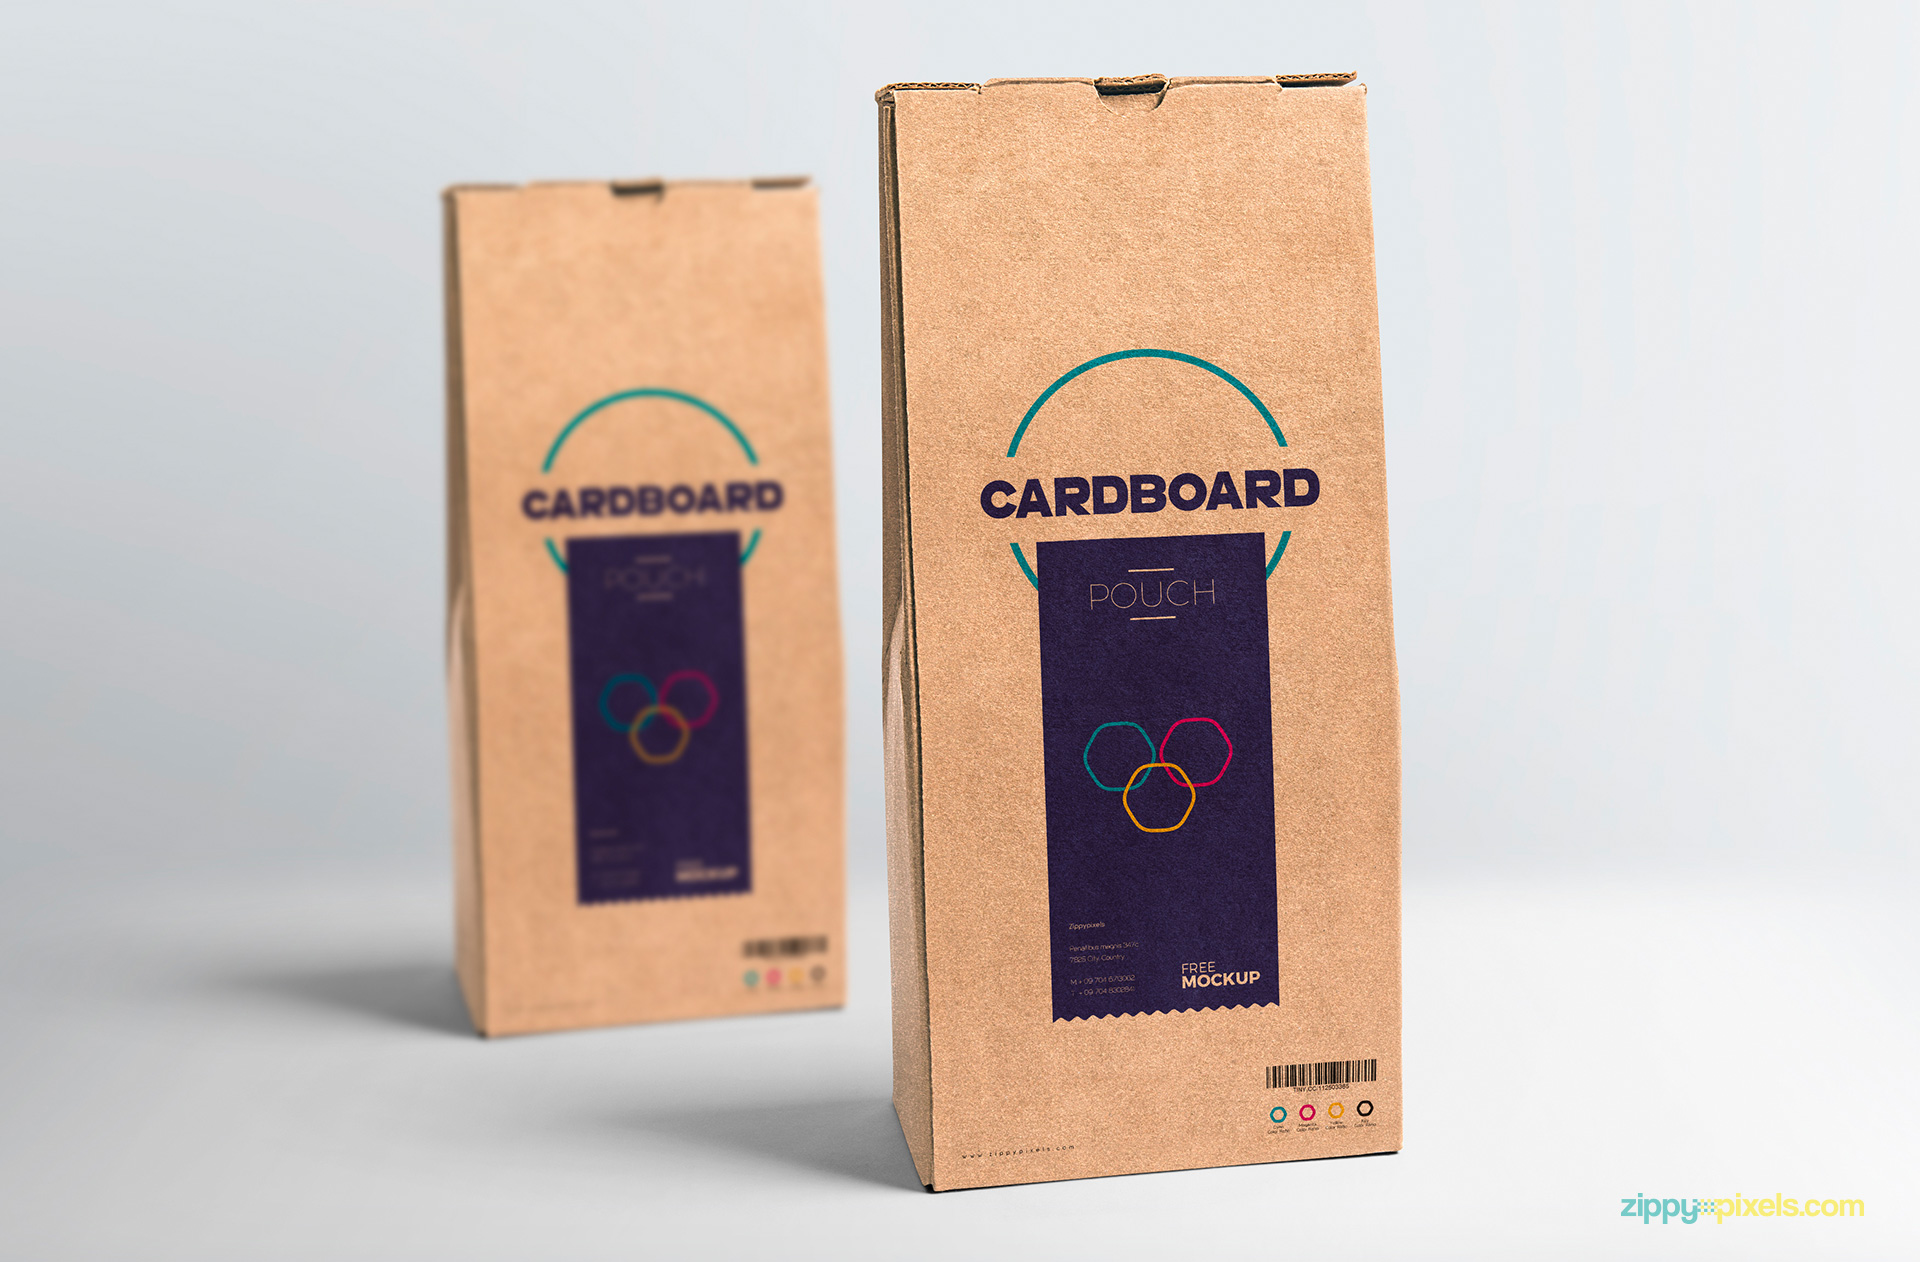 Two cardboard pouches are placed one after other.